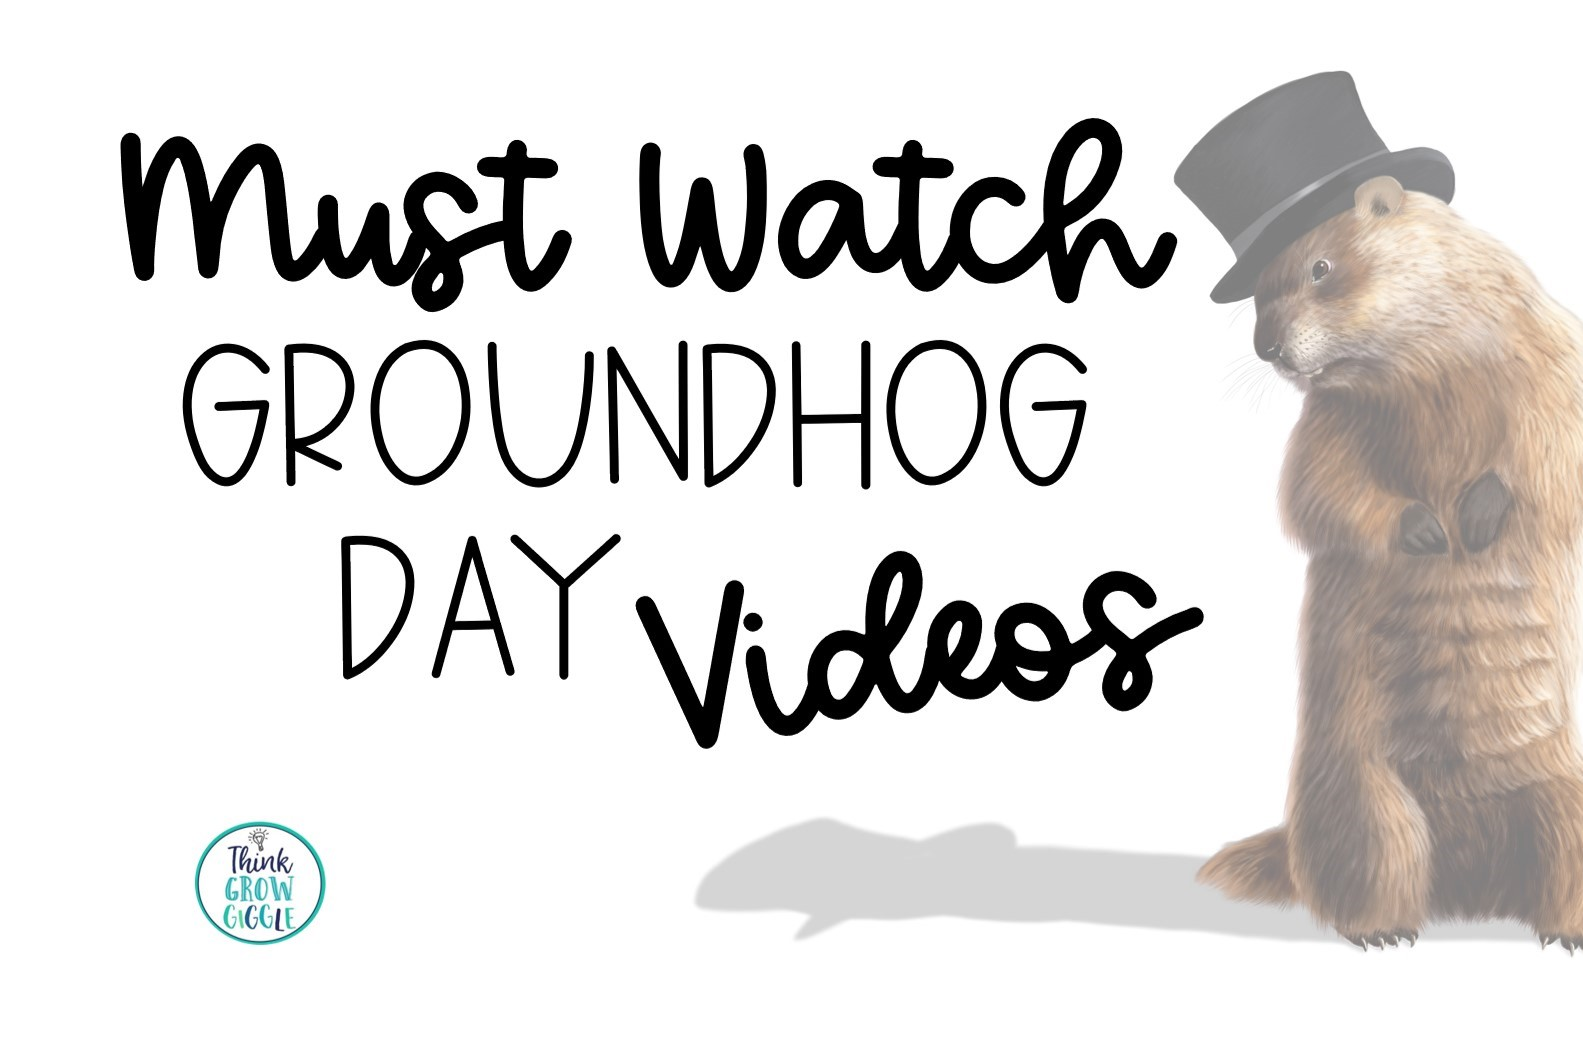 Groundhog Day Videos for Elementary